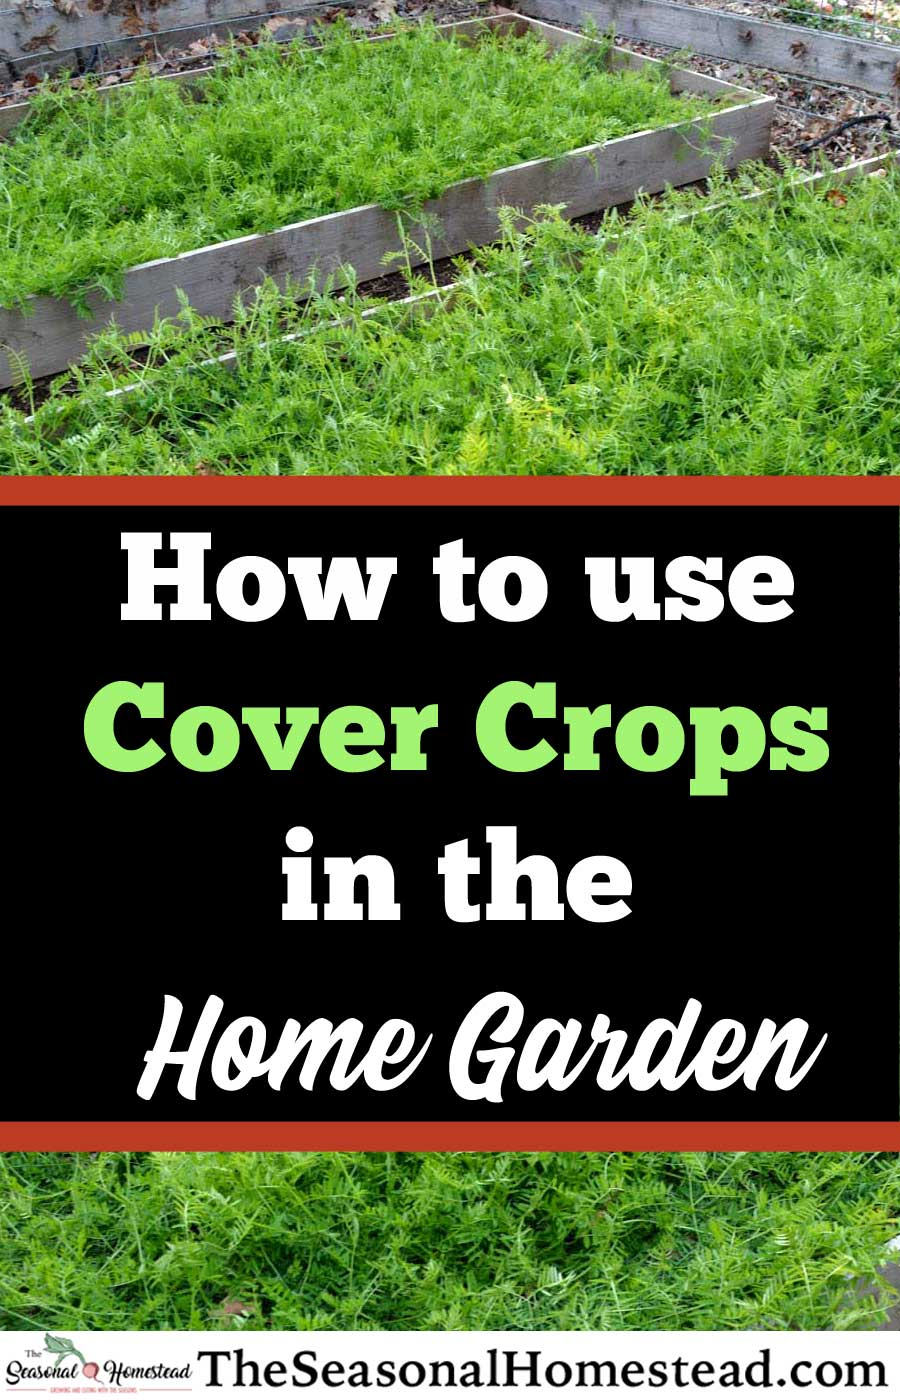 How-To-Use-Cover-Crops-in-the-Home-Garden.jpg